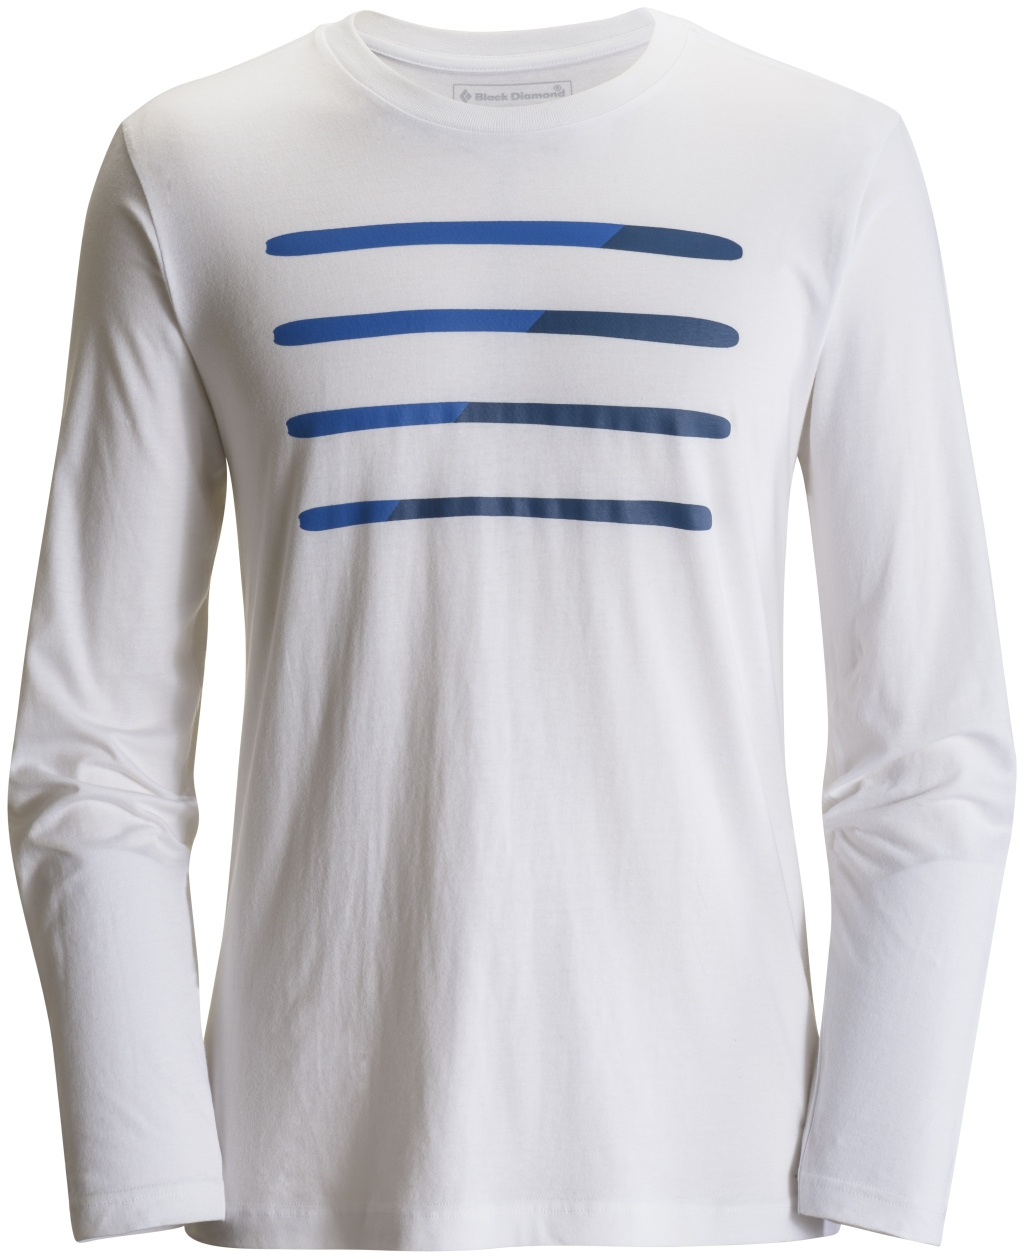 Black Diamond Long-Sleeve Ski Tee White-30